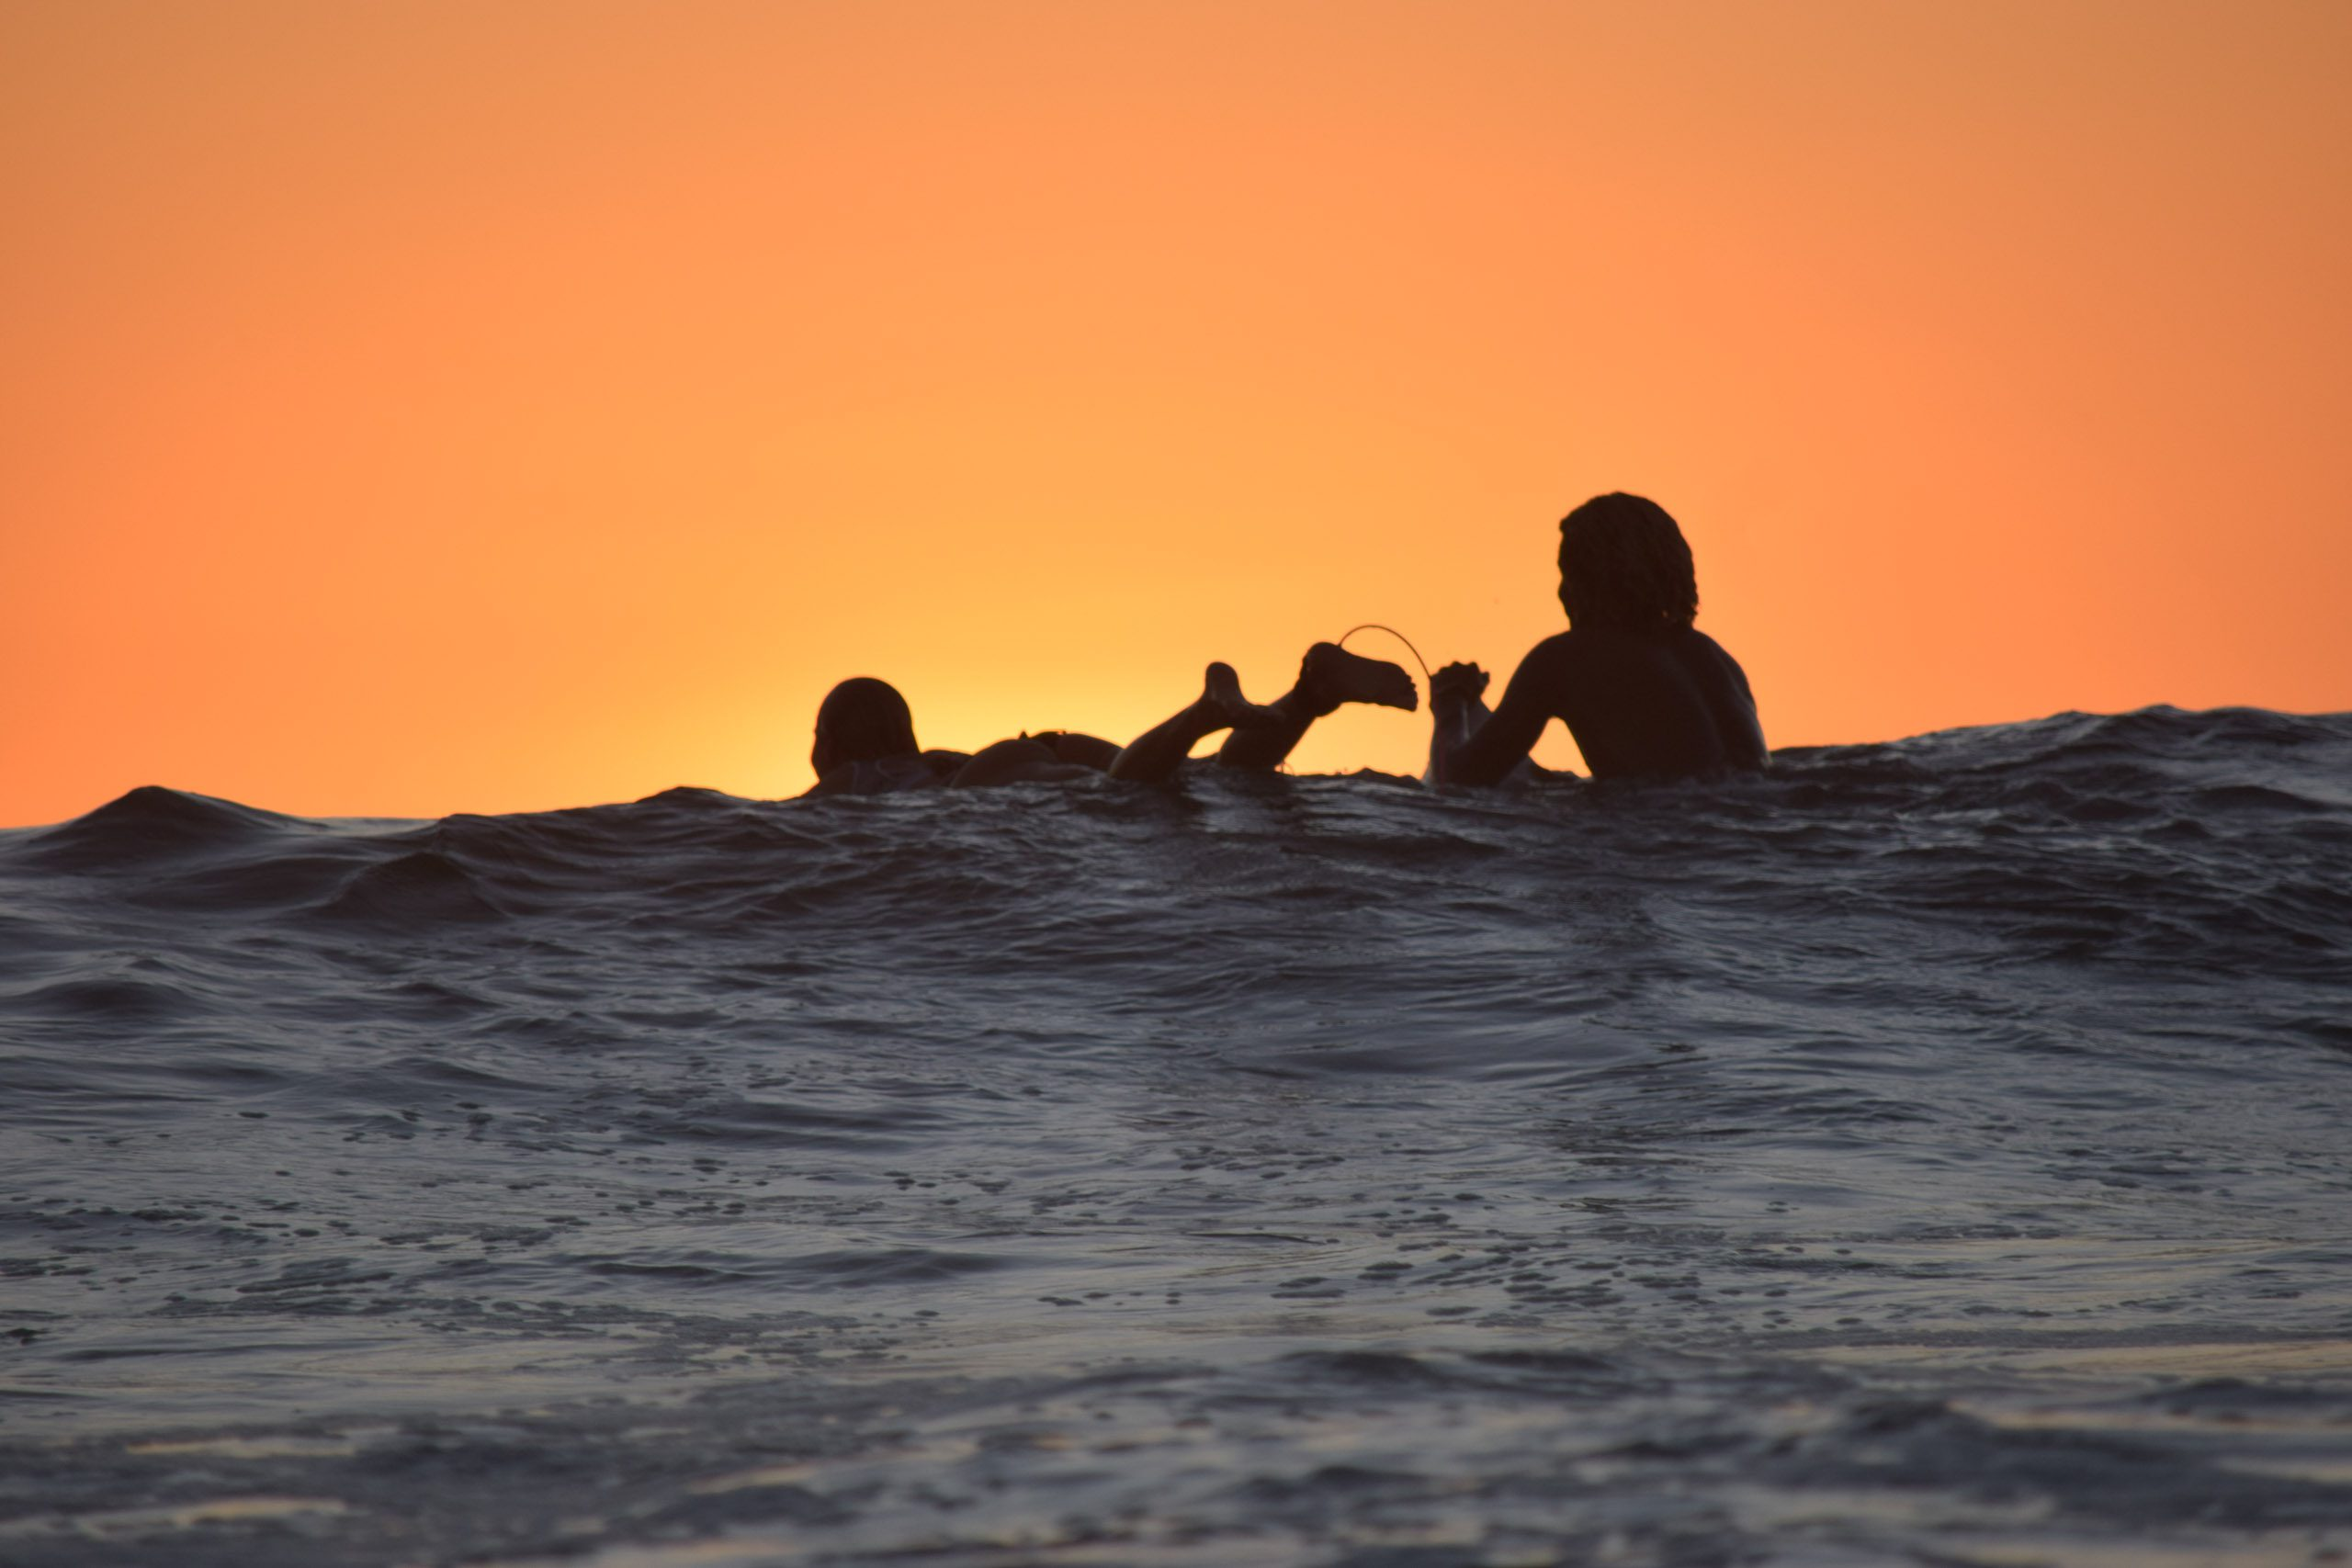 Casa Oro Group What-Are-You-Waiting-For-Casa-Oro-Surf-San-Juan-del-Sur-Nicaragua-Adventure-Travel-Playa-Remanso-Surf-Sunset-Session Surf